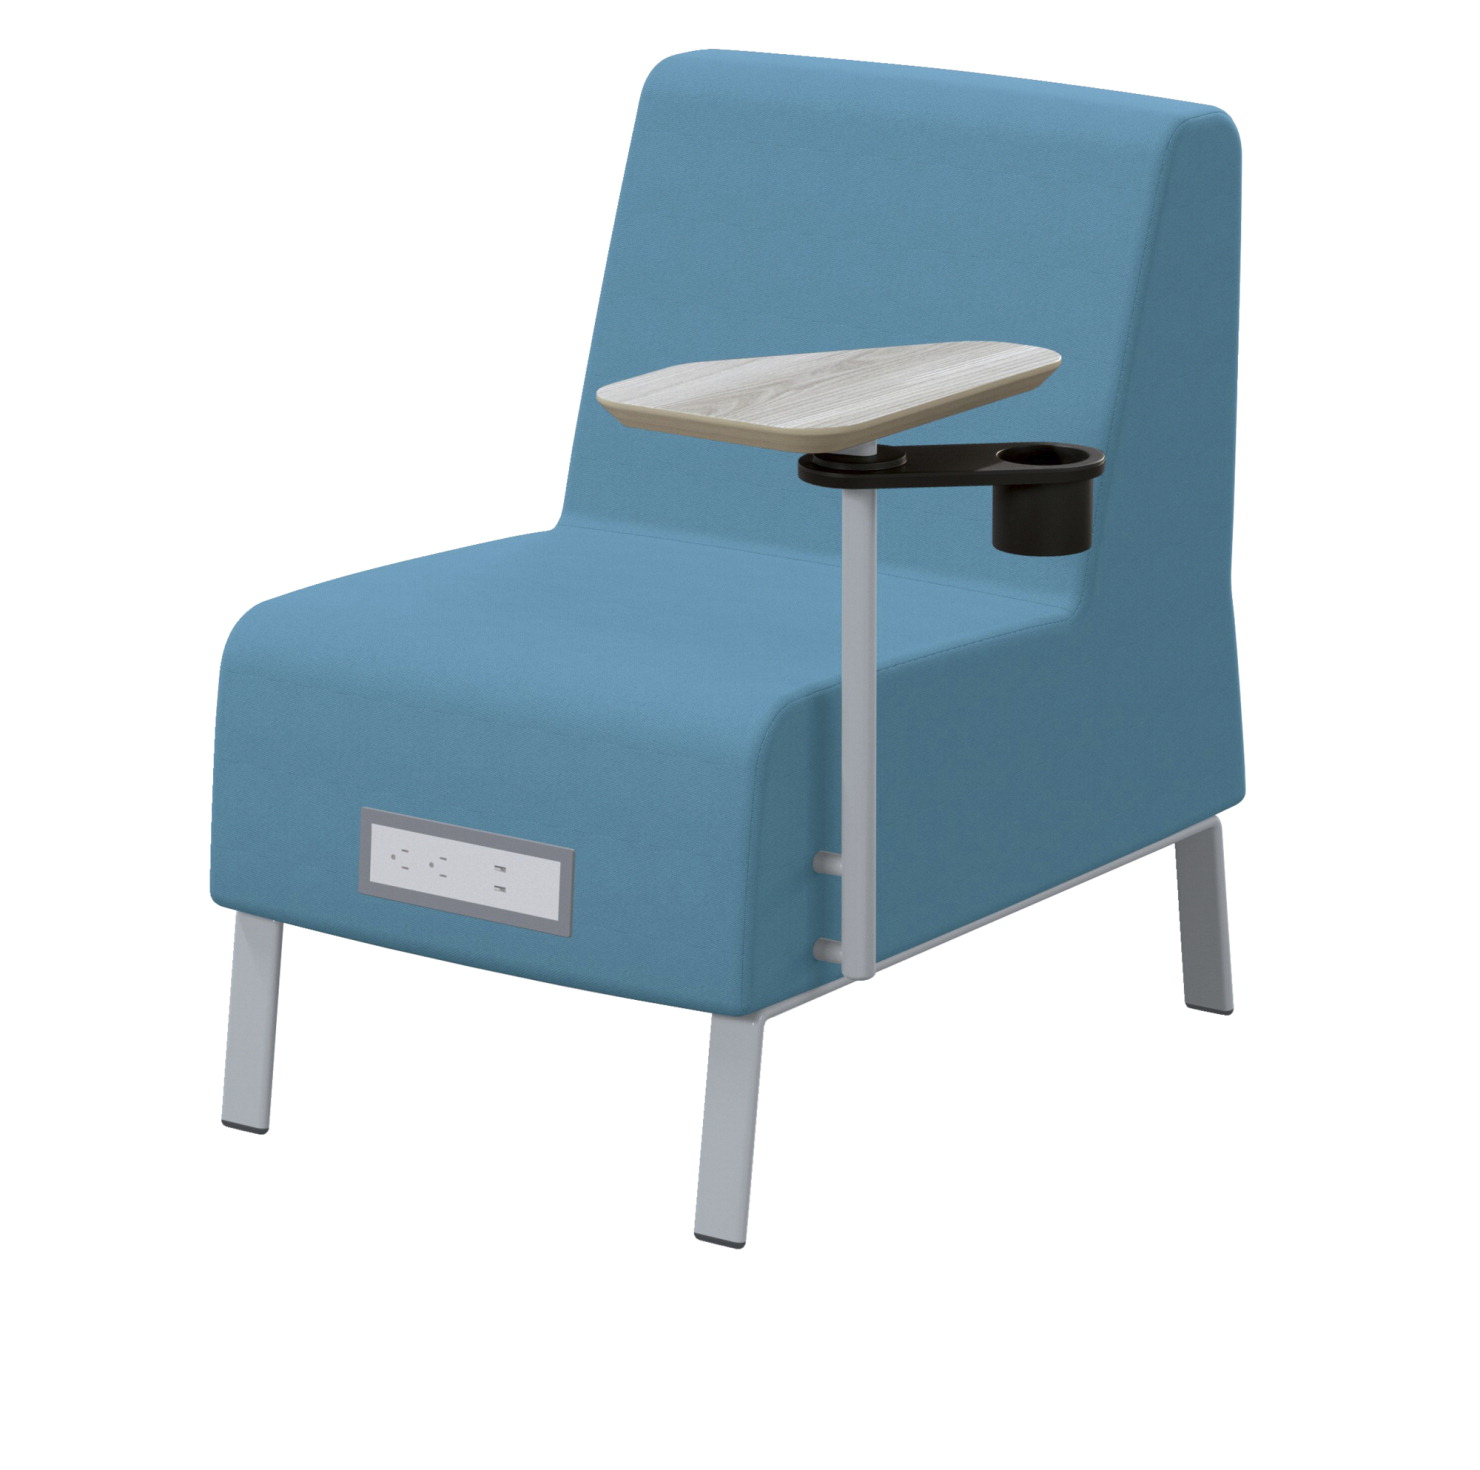 Classroom Select Soft Seating NeoLink Armless Chair, Left Tablet, Power Flat in Front, 23 x 32 x 34 Inches, Various Options